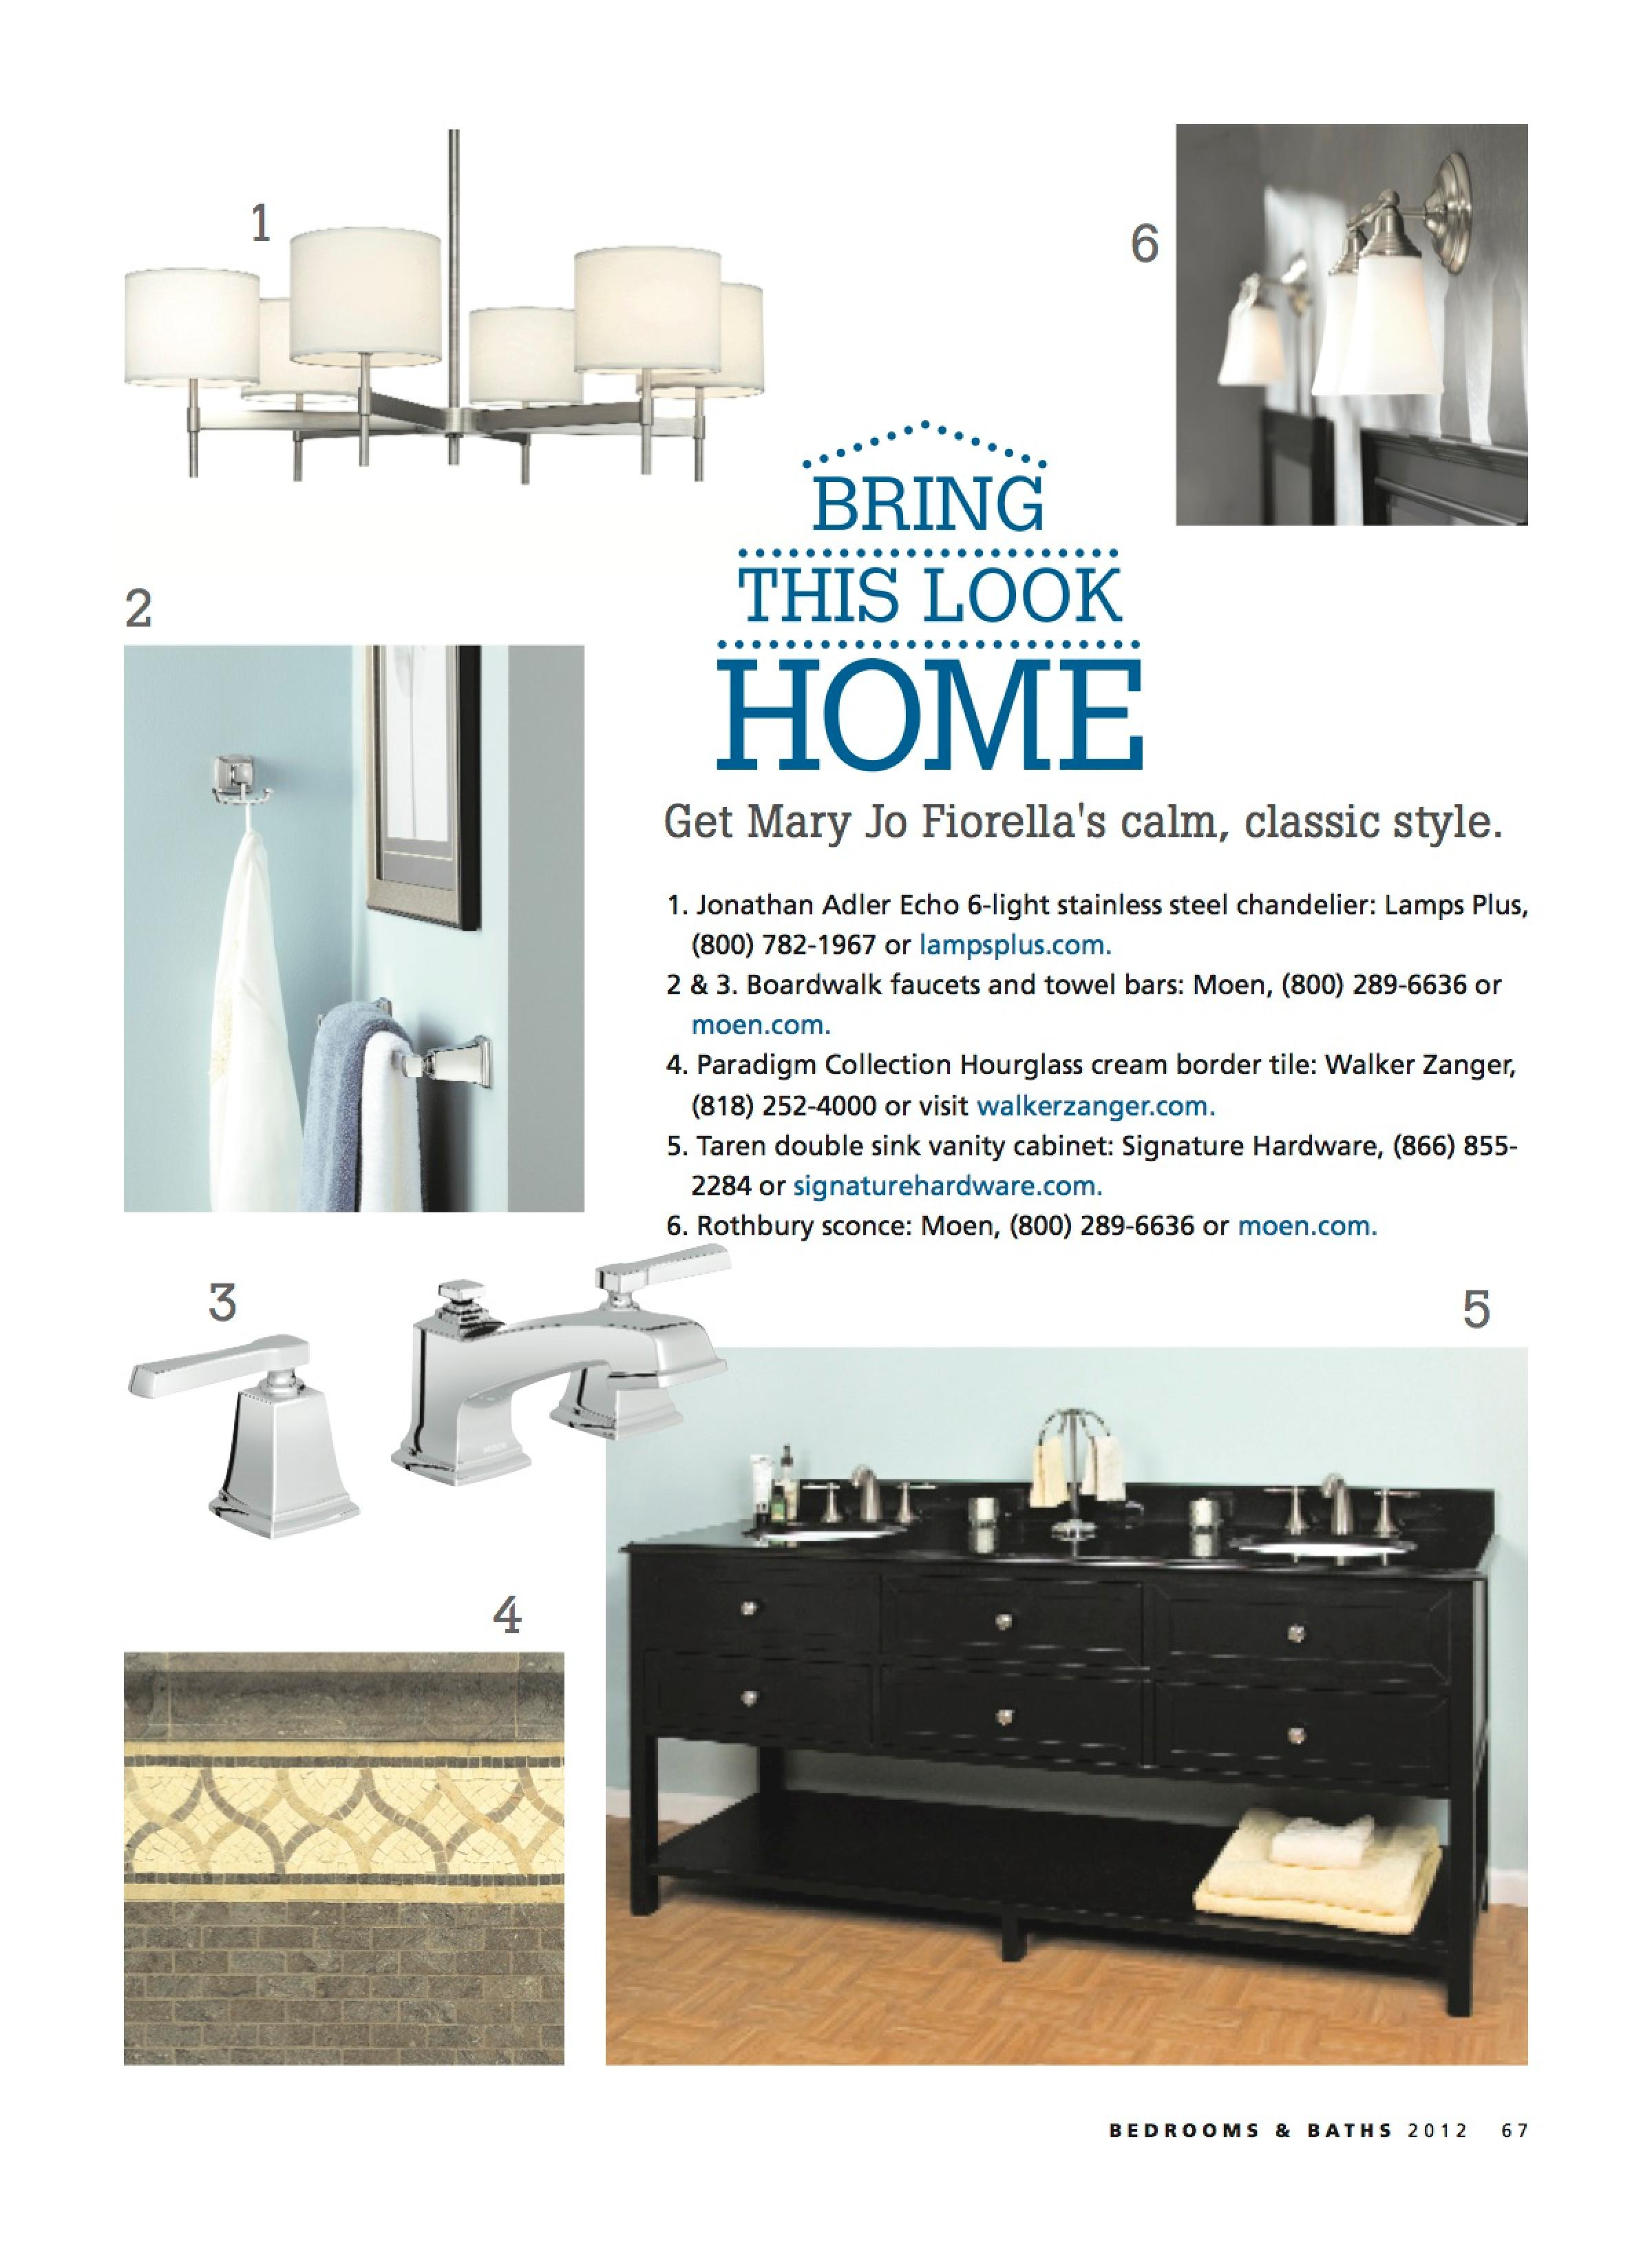 11-press_-_bedrooms_and_baths_magazine-page-004